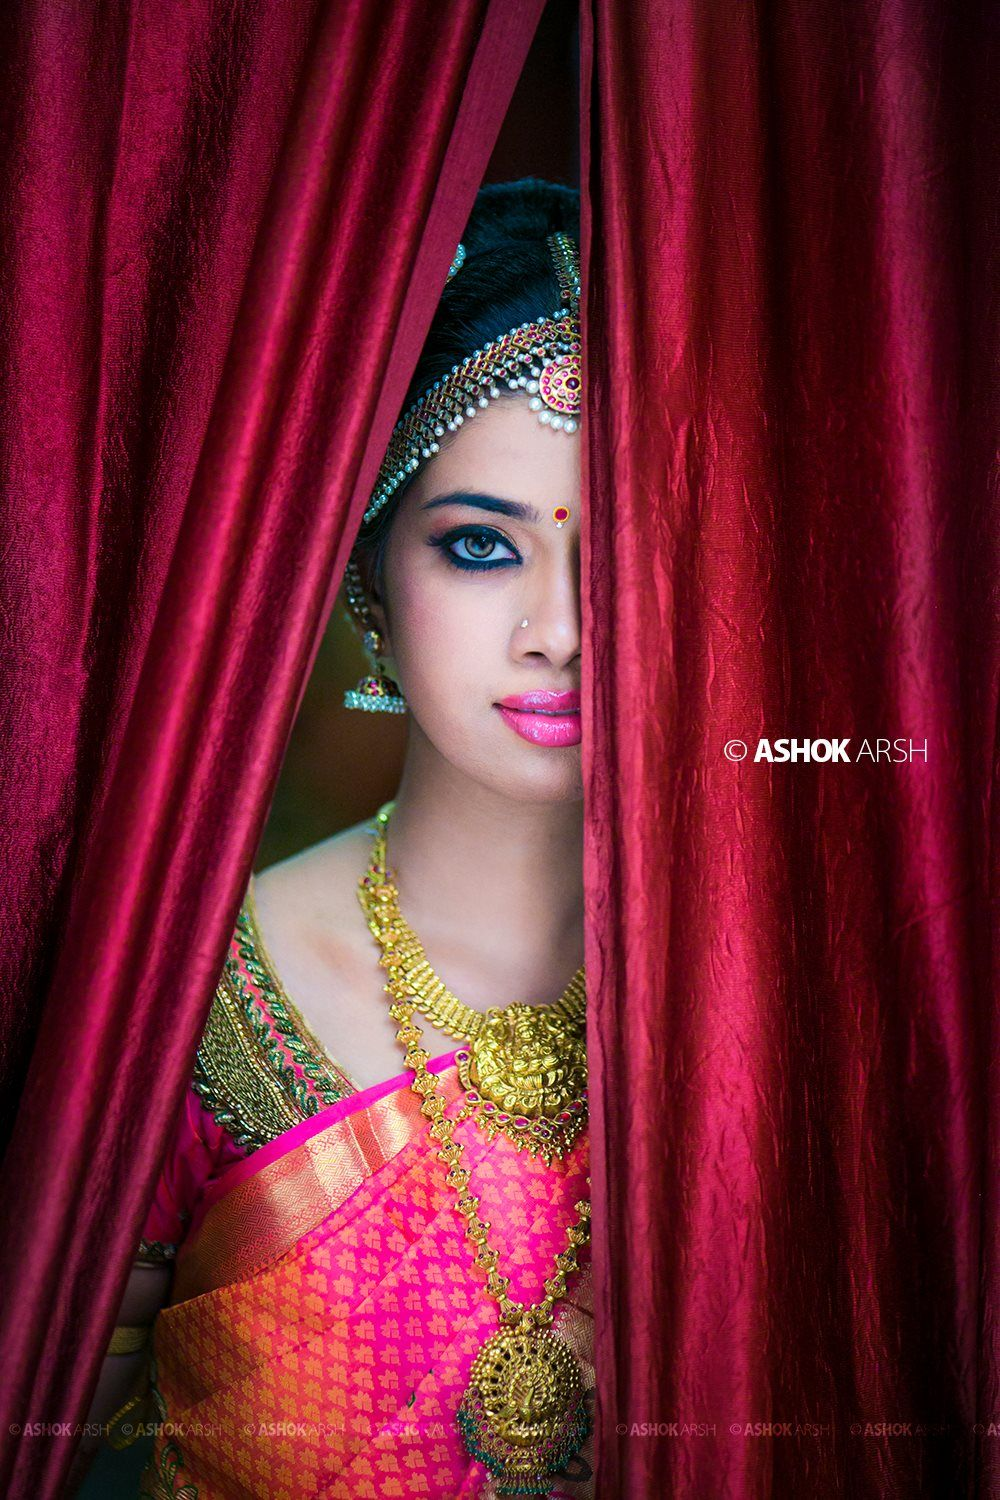 35 Bridal Portraits From '15 Are Shopzters' Favourites